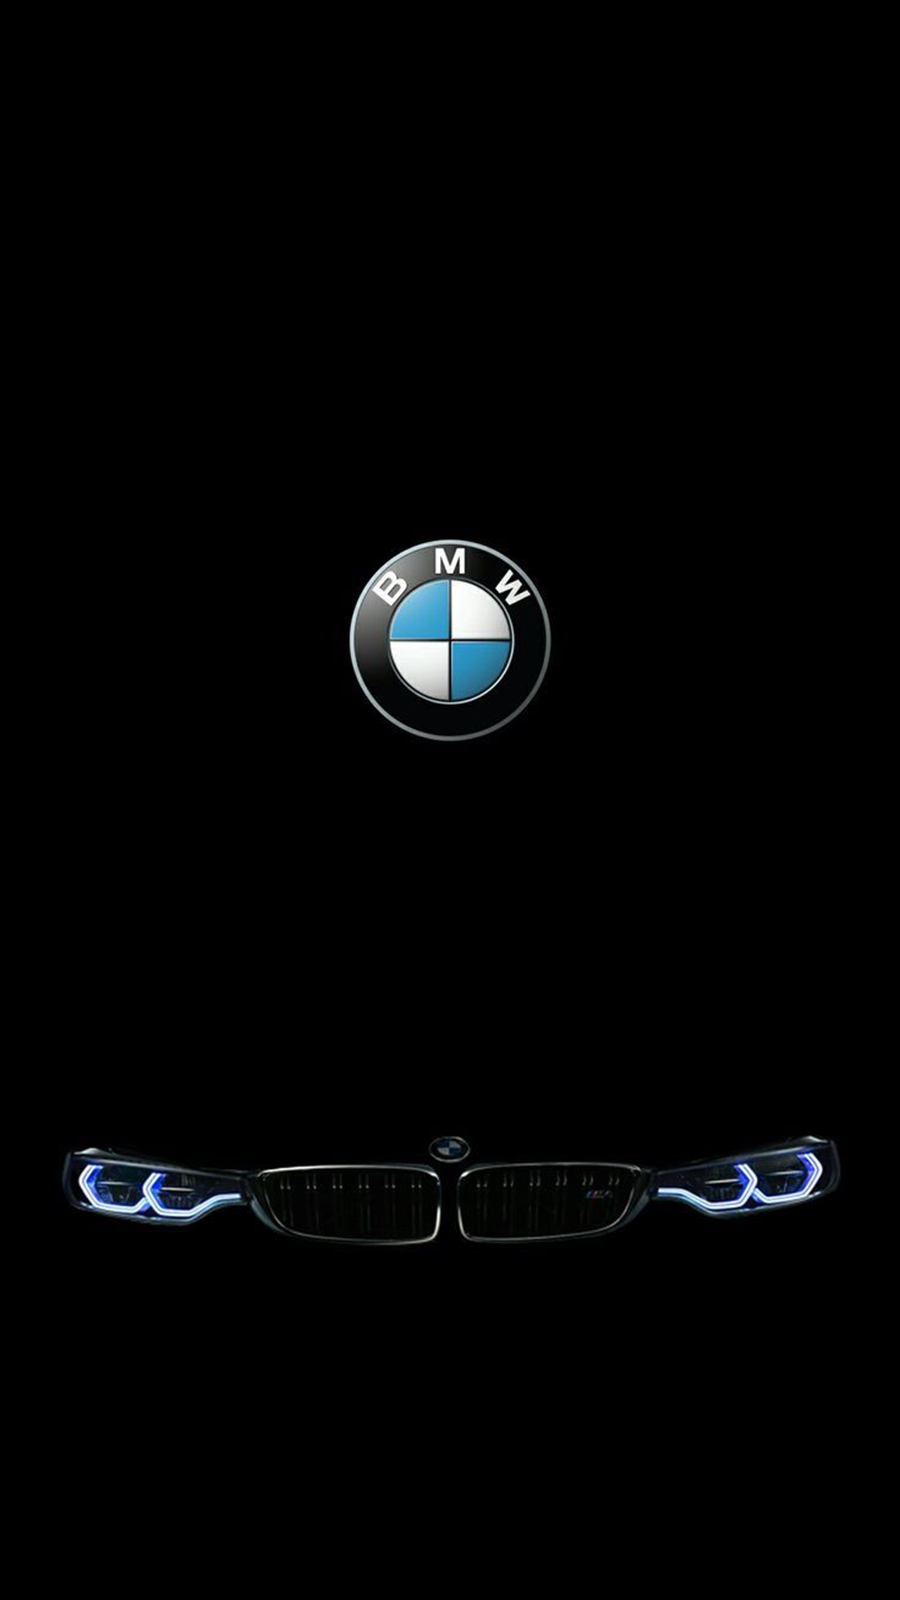 Best Bmw HD wallpapers download – Free Bmw HD Wallpapers (5)